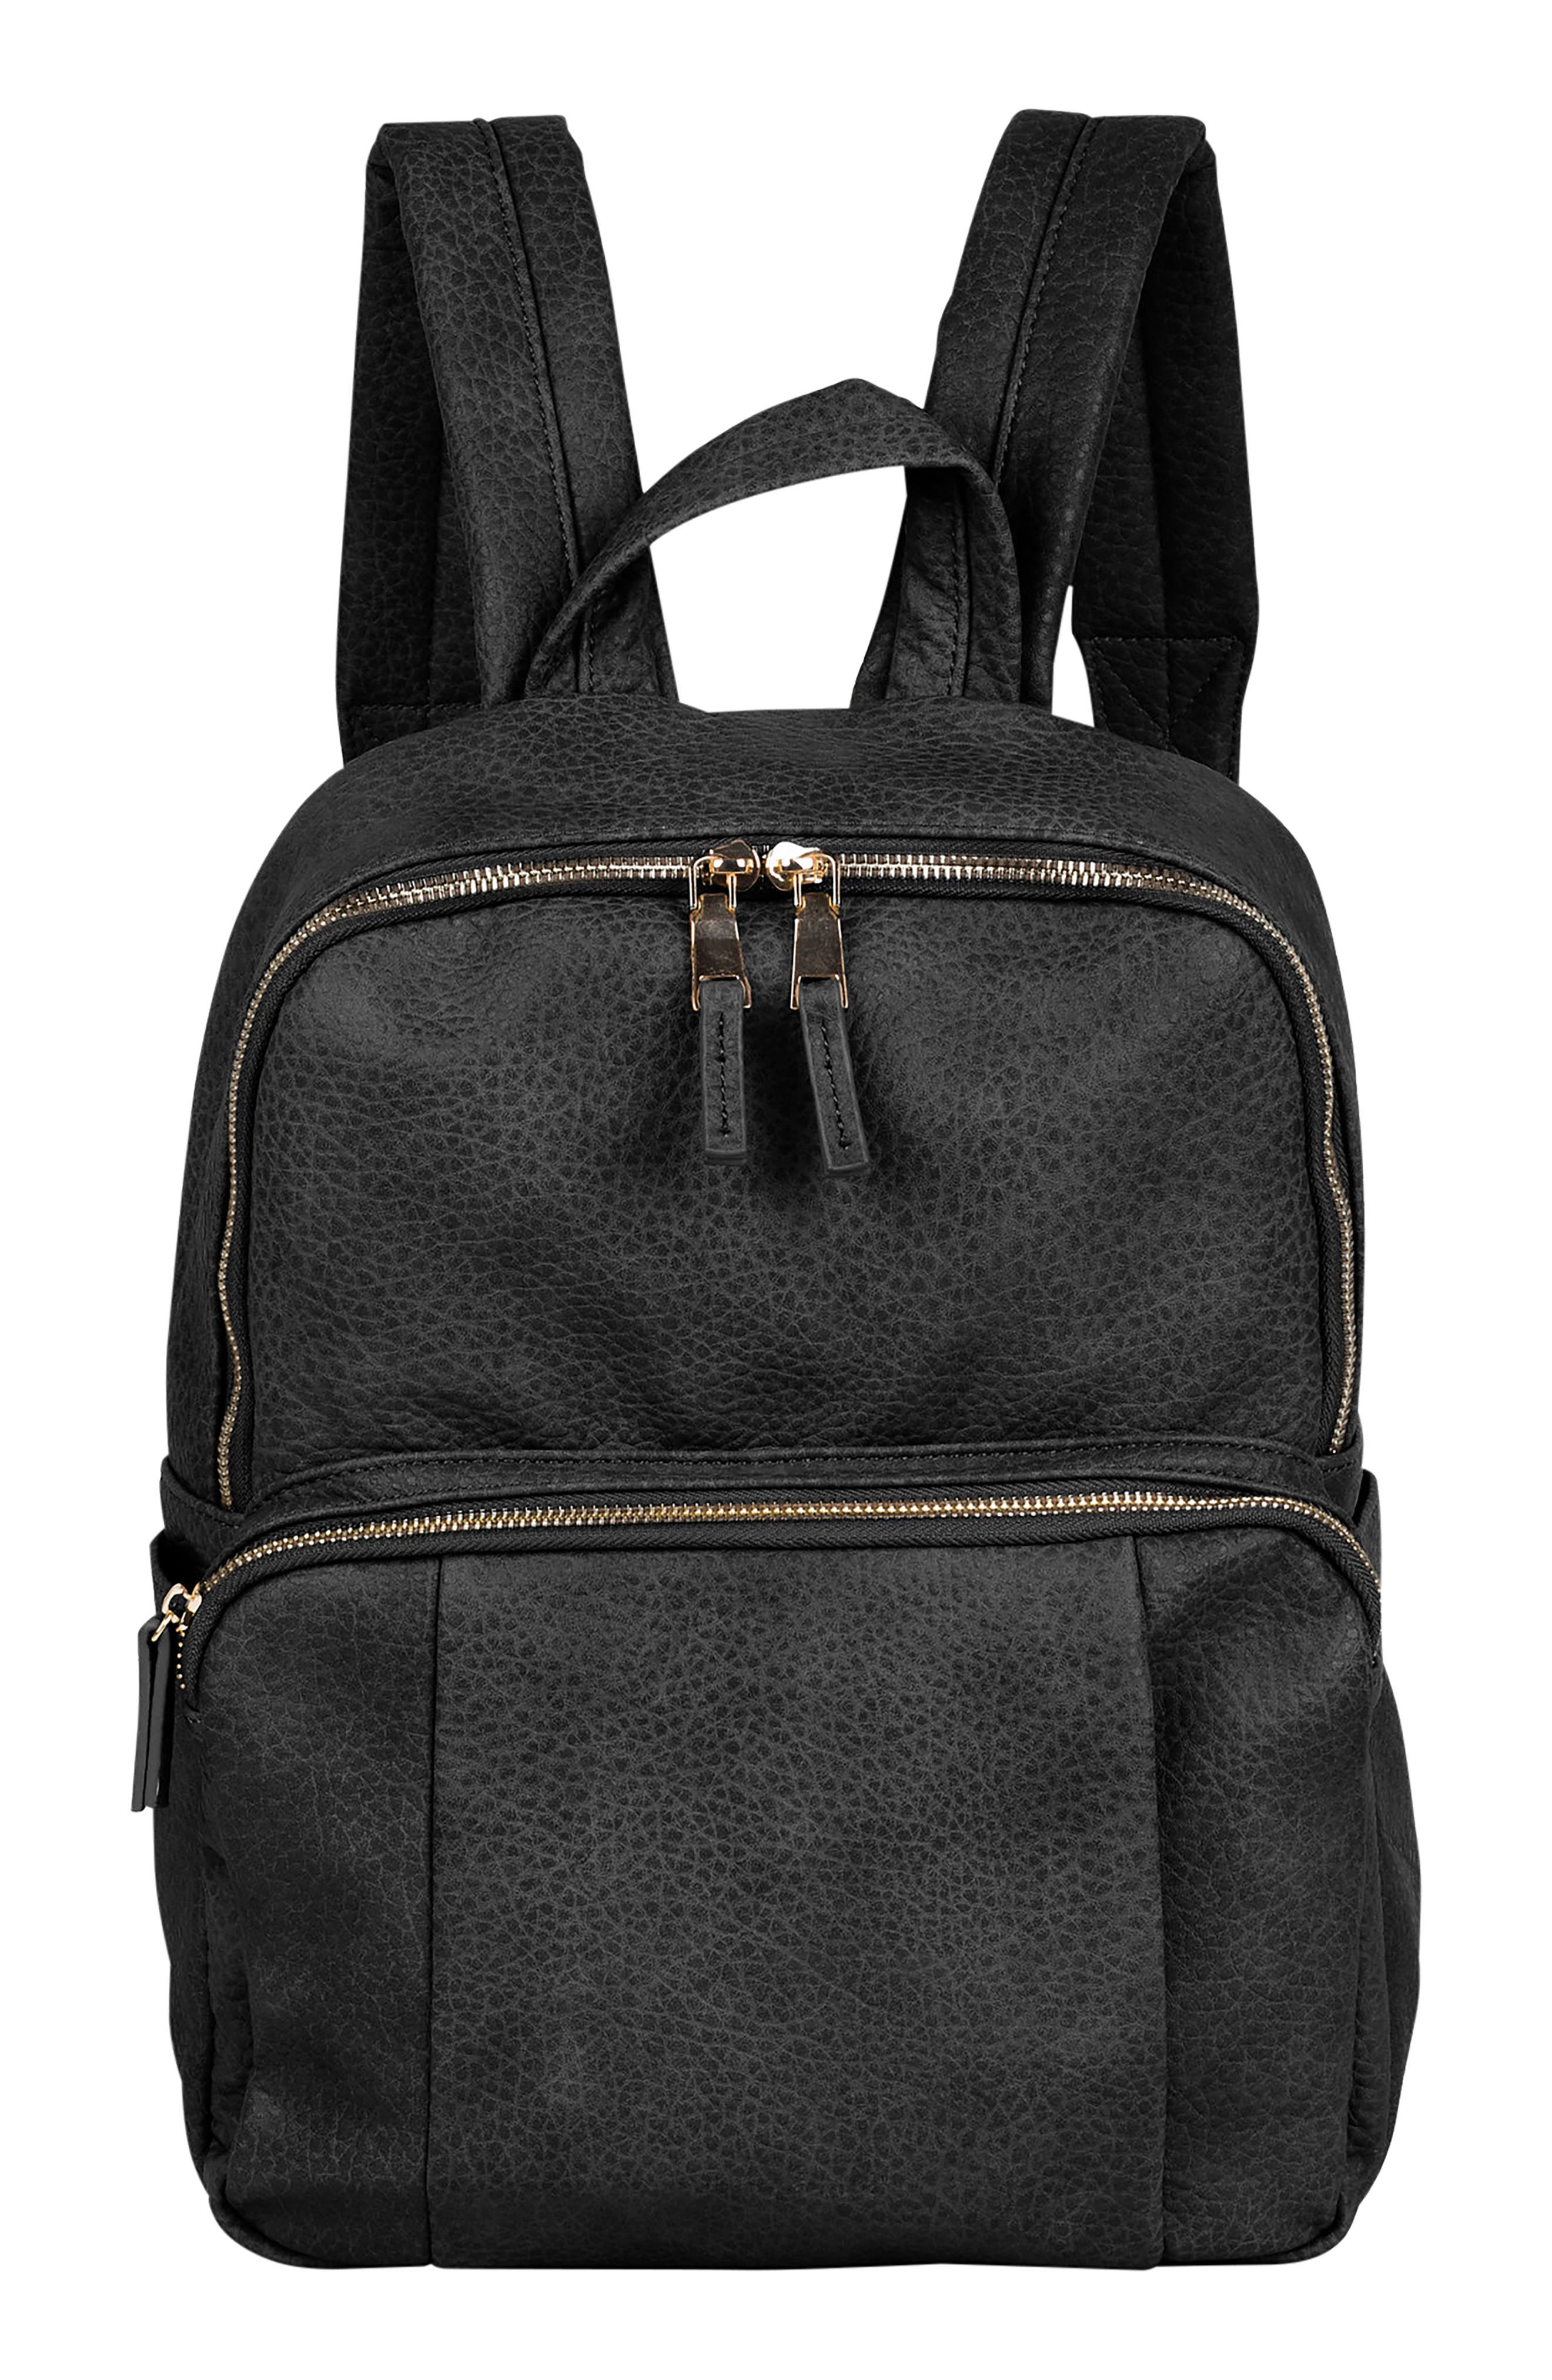 URBAN ORIGINALS Bold Move Vegan Leather Laptop Backpack, Main, color, BLACK